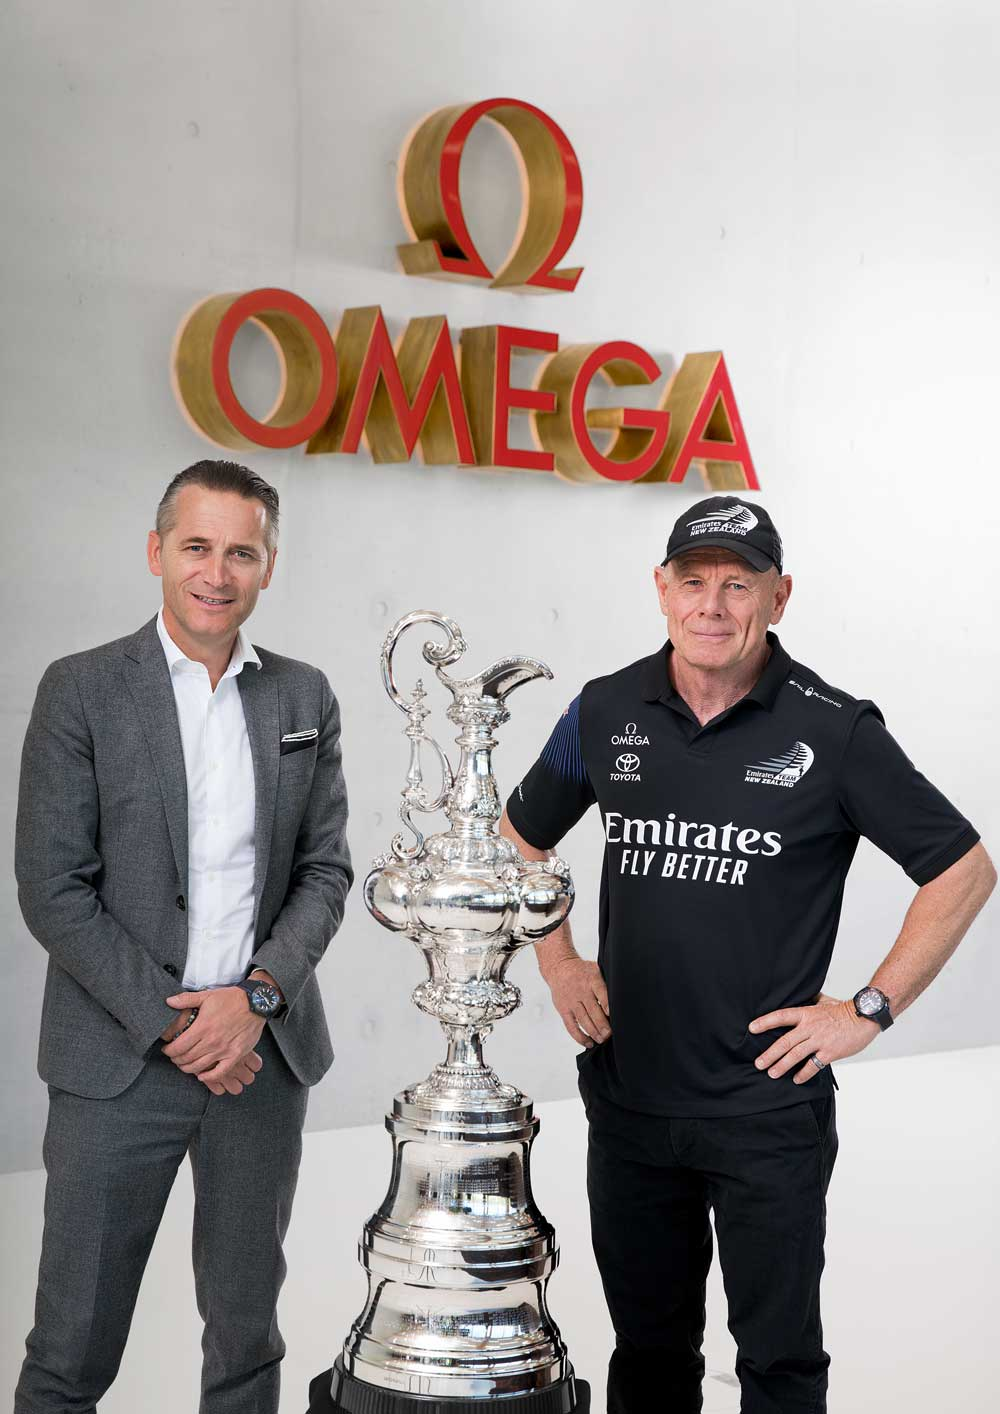 CEO of Omega, Raynald Aeschlimann poses with CEO of Emirates Team New Zealand, Grant Dalton with the America's Cup trophy.